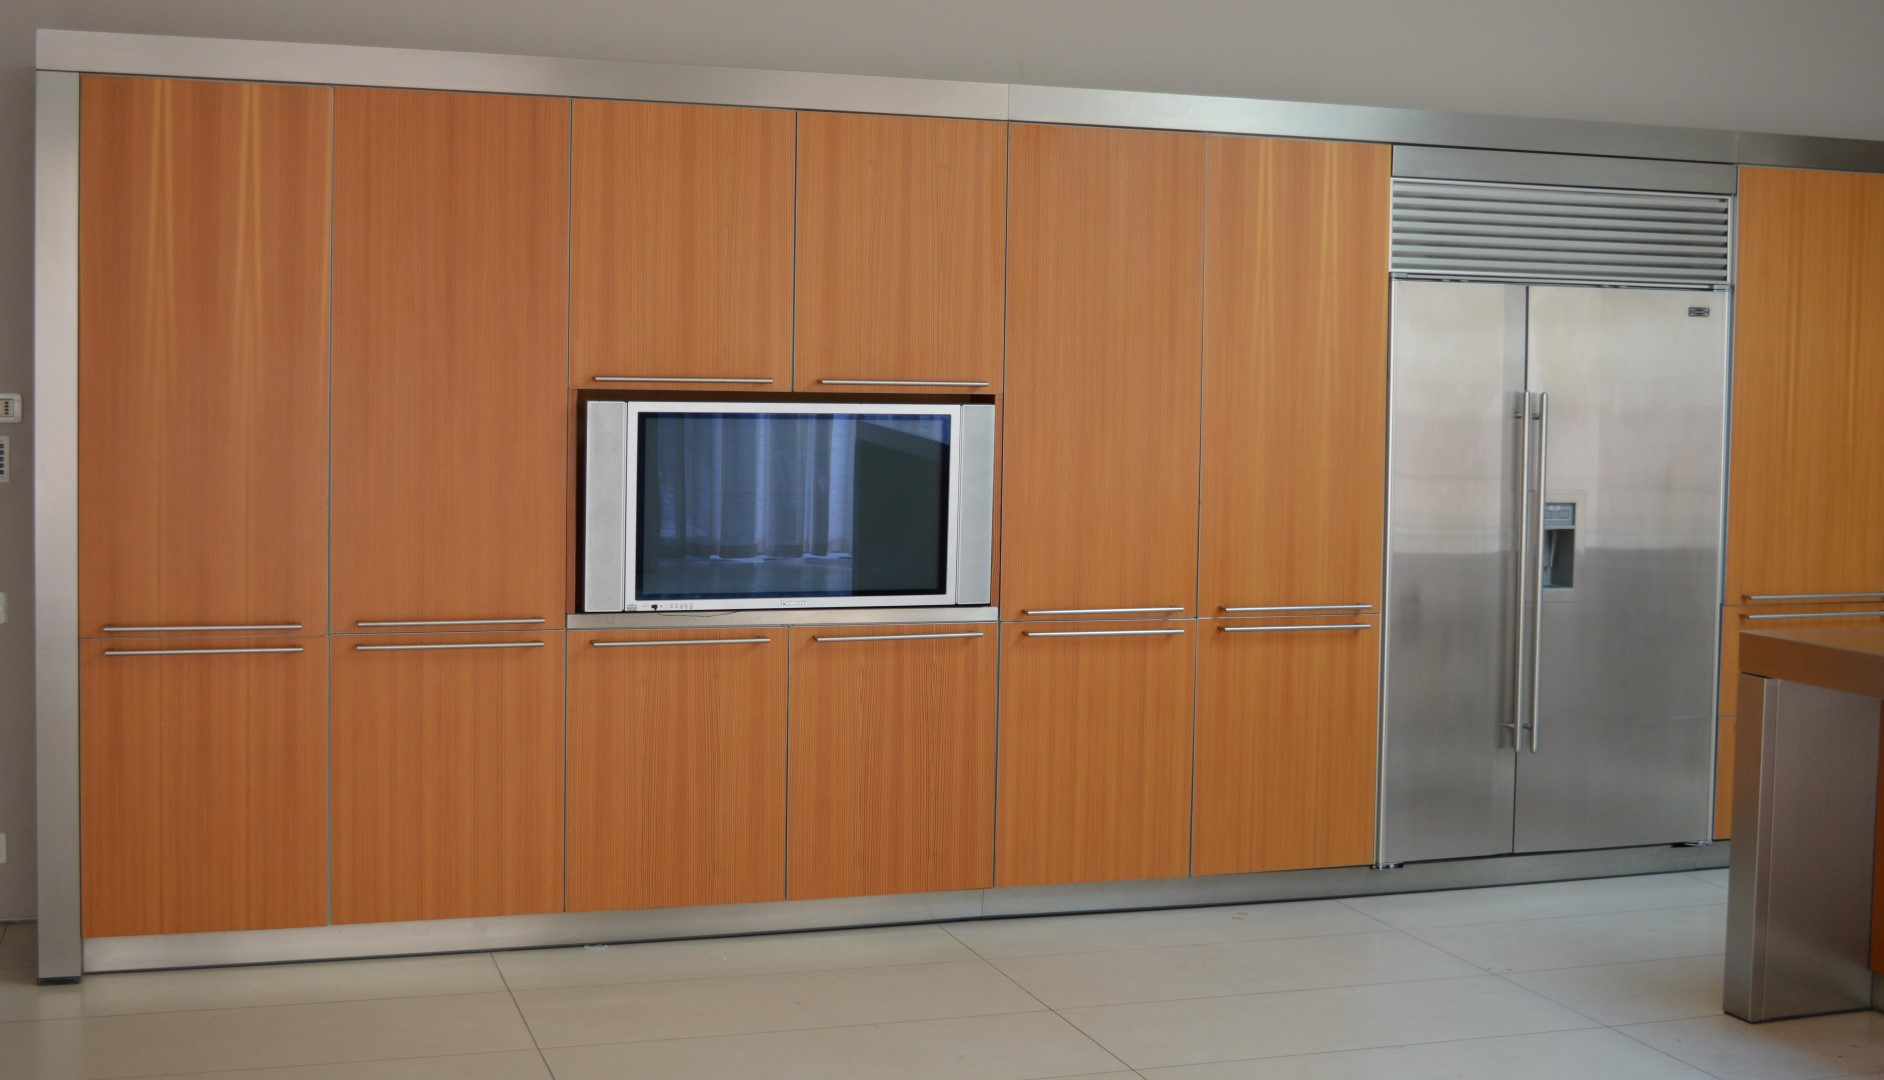 1 x designer bulthaup fitted kitchen with appliances for Wooden fitted kitchen